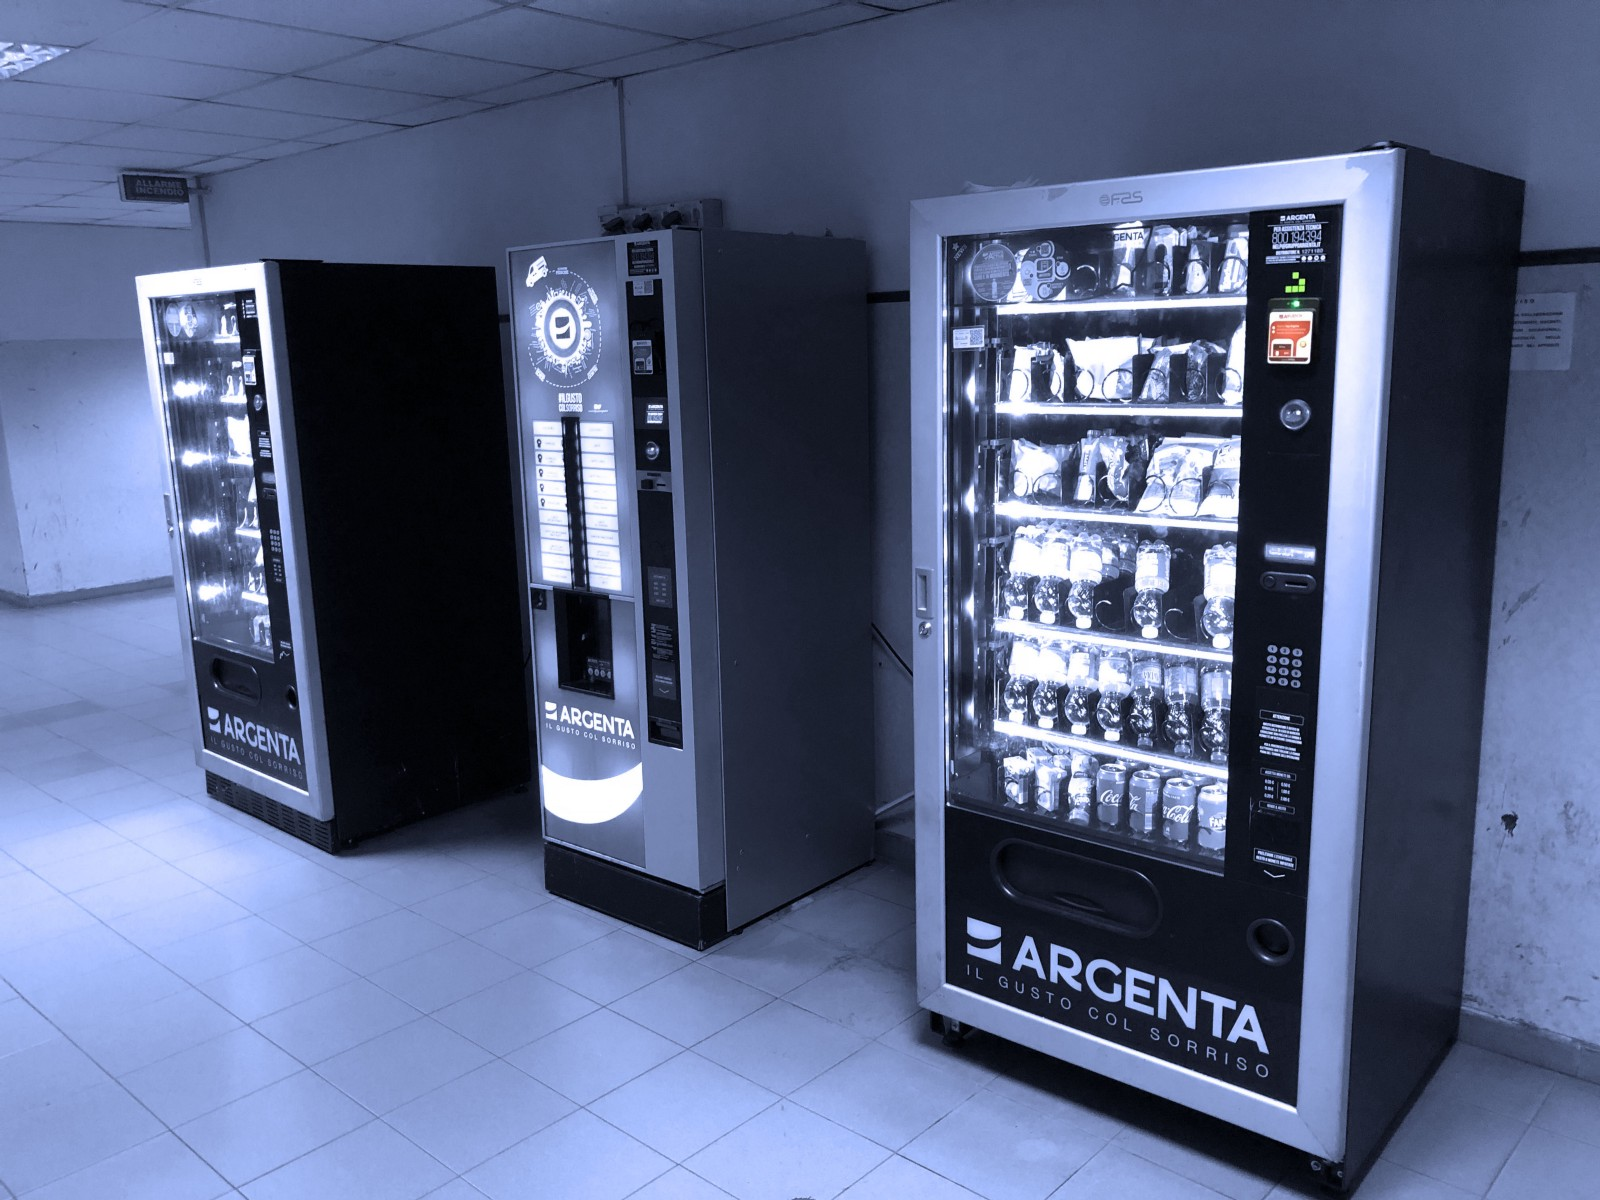 /how-i-hacked-modern-vending-machines-43f4ae8decec feature image